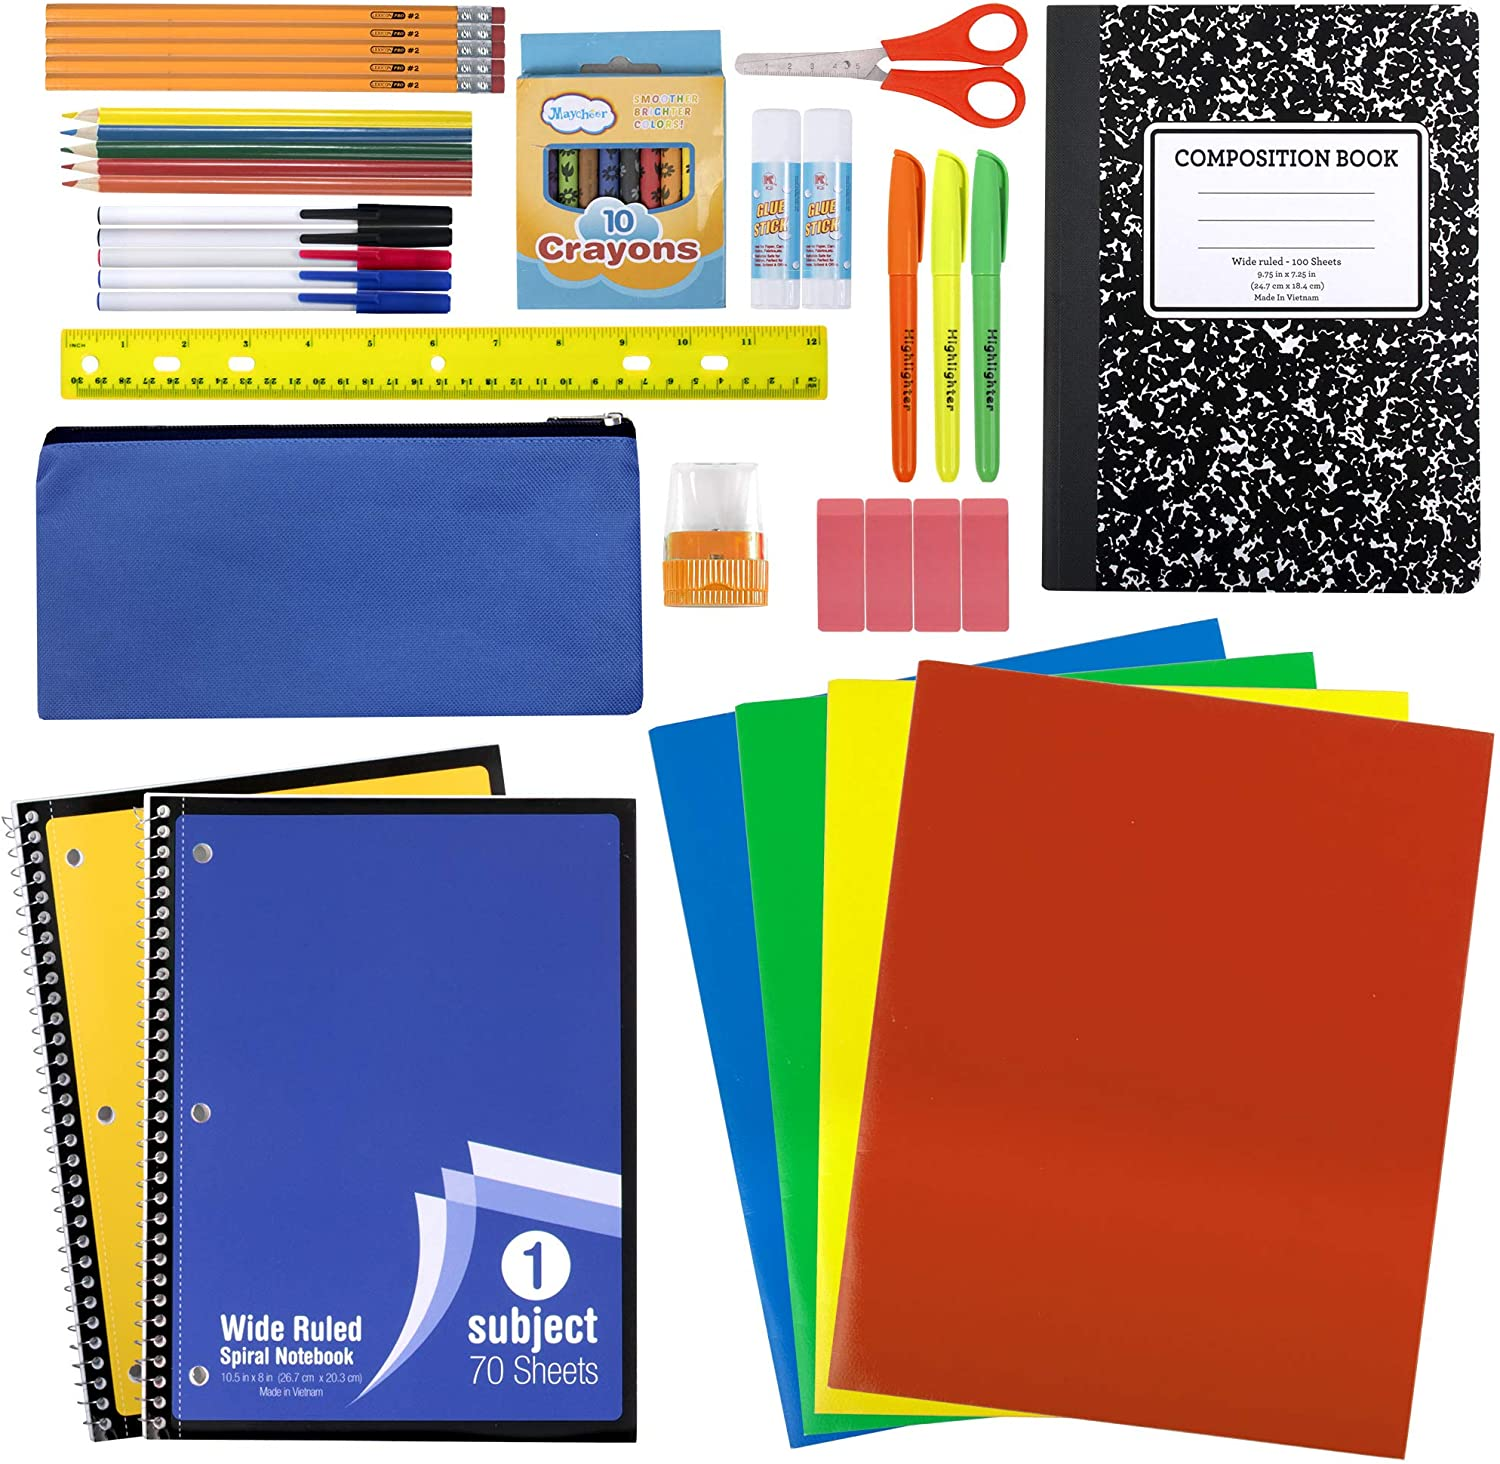 Amazon.com : 45 Piece School Supply Kit Grades K-12 - School Essentials  Includes Folders Notebooks Pencils Pens and Much More! : Office Products